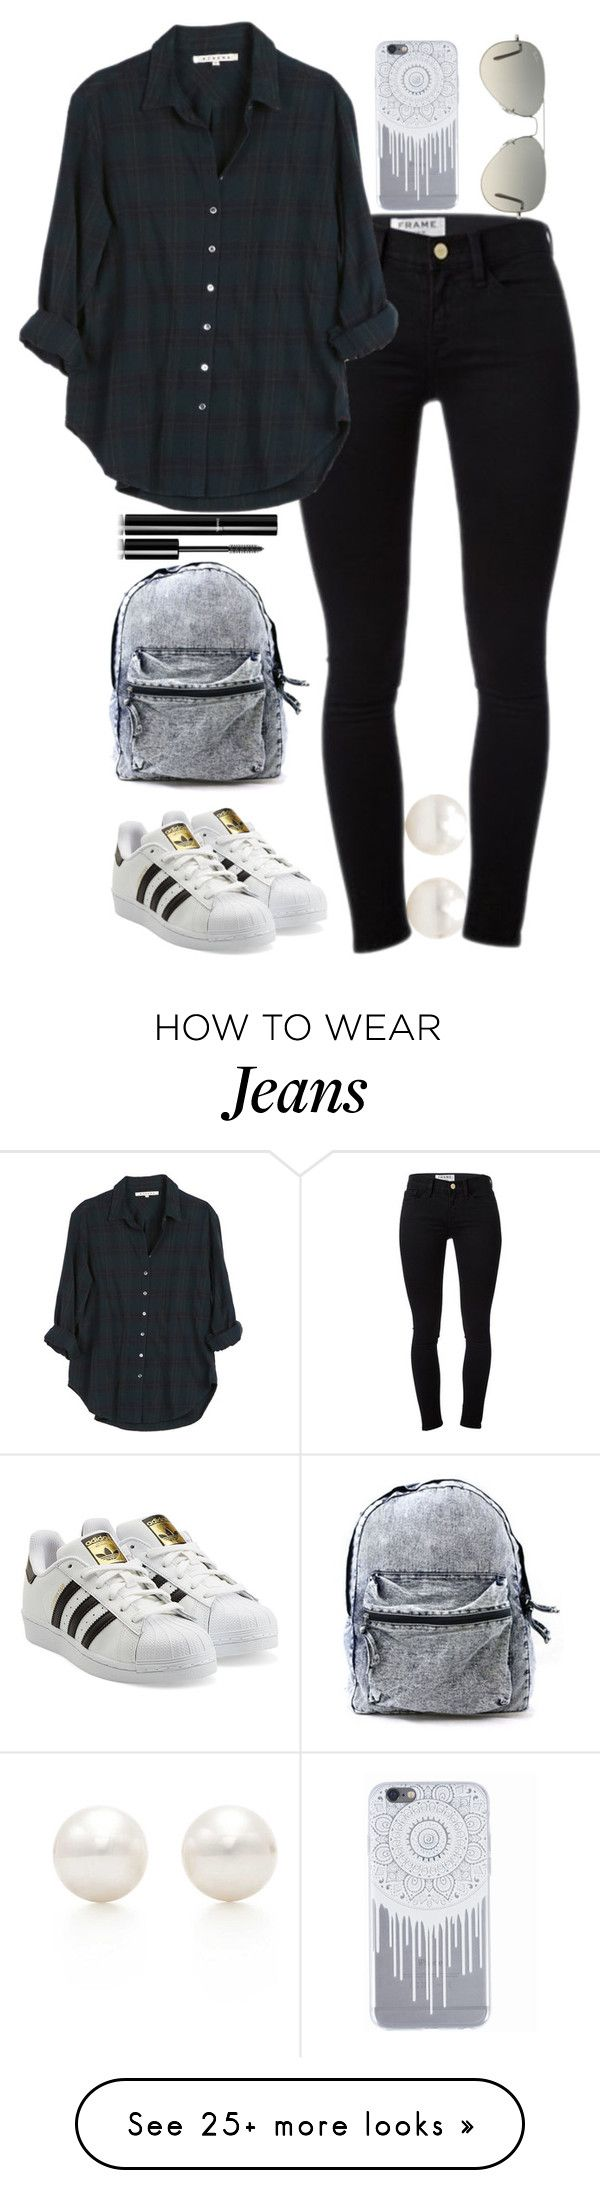 """""""Flannel and Jeans"""" by namitabpatel on Polyvore featuring Tiffany & Co., Frame Denim, Xirena, adidas Originals, Ray-Ban and Chanel"""